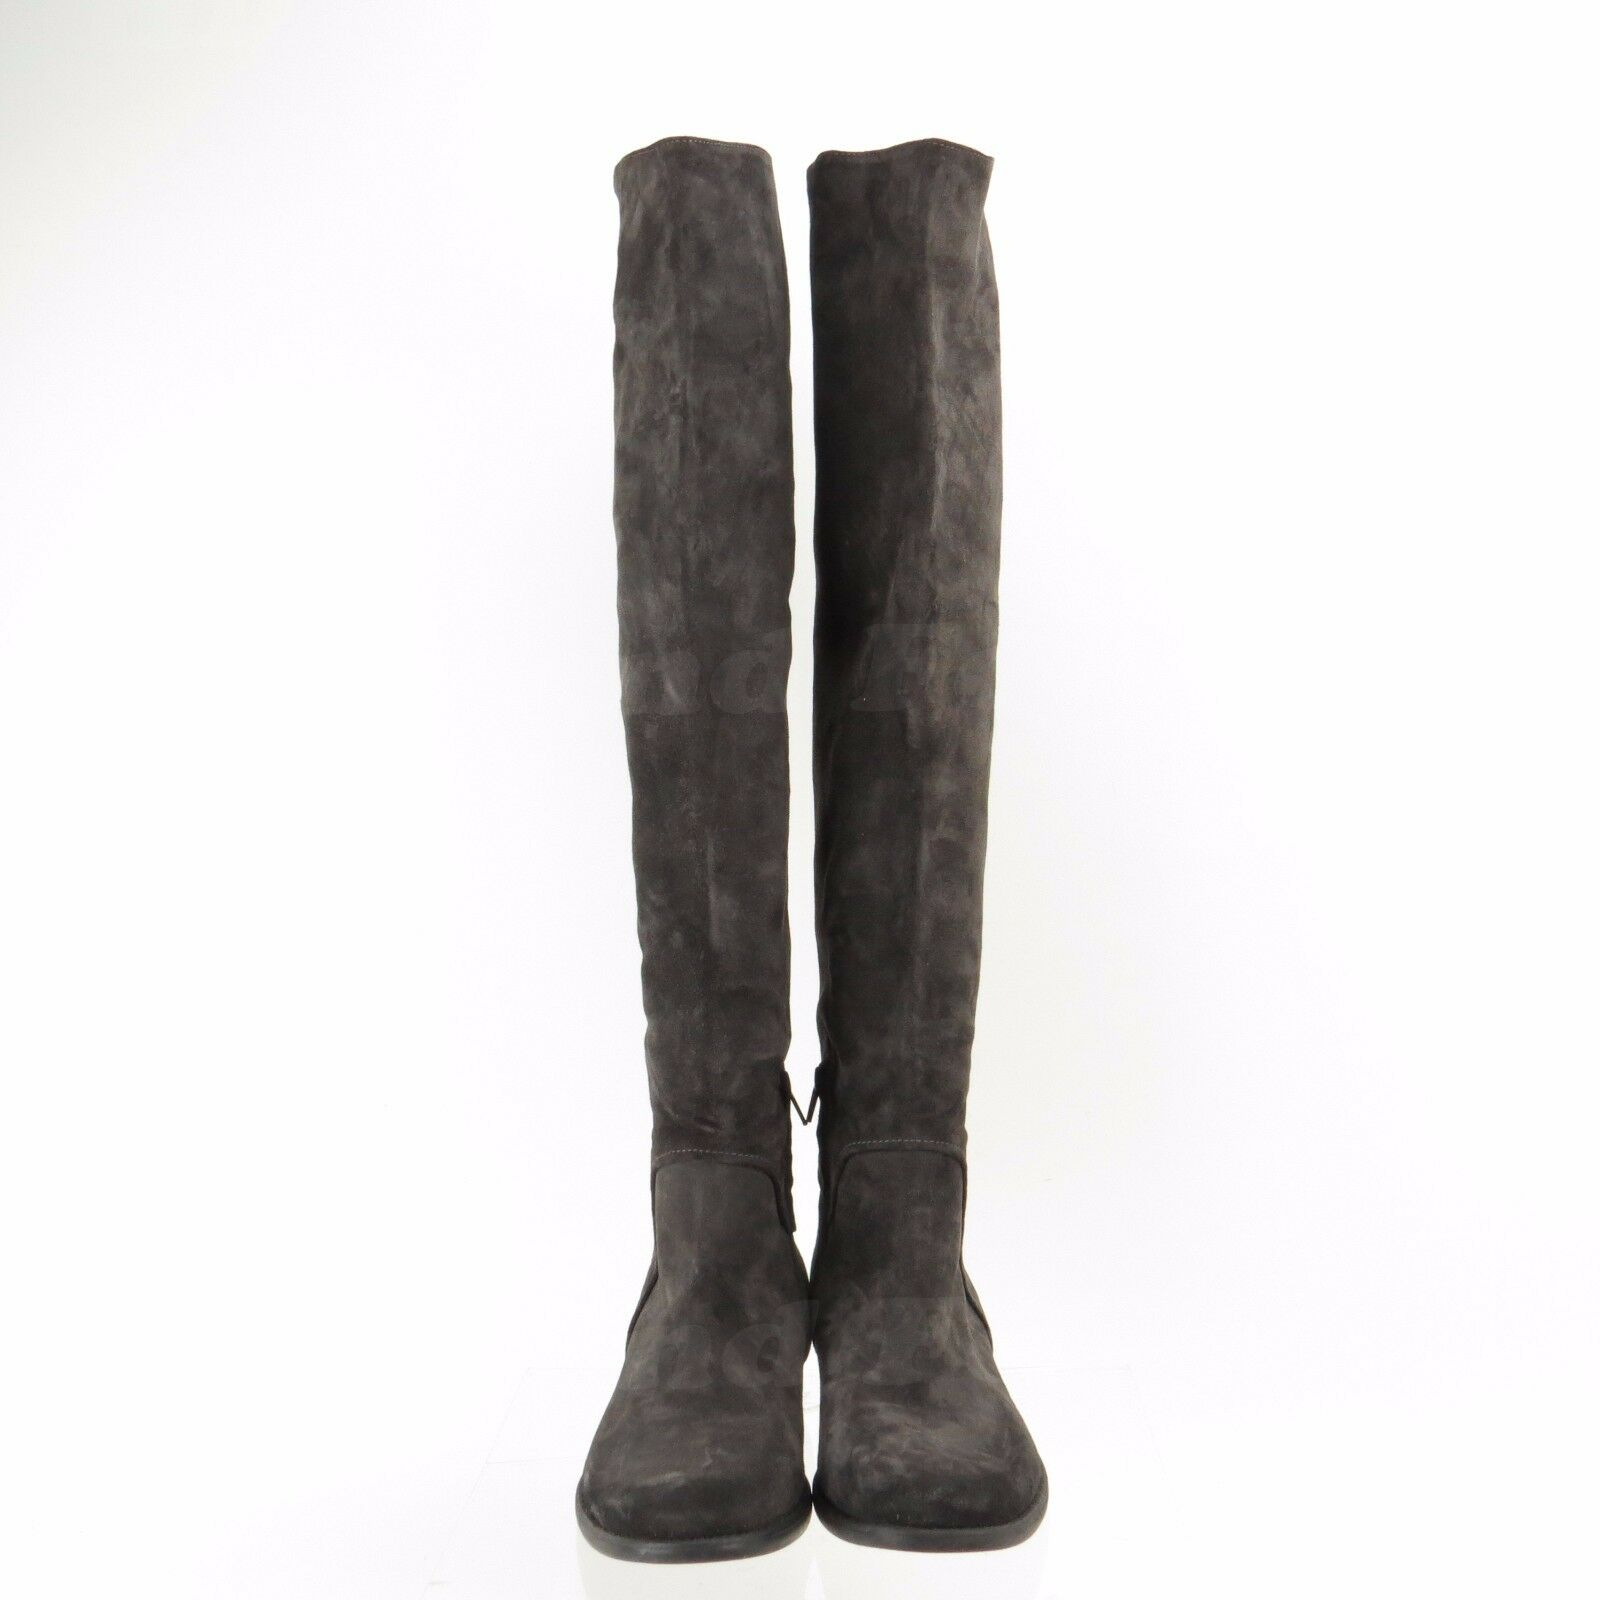 Sesto Meucci Women's shoes Black Suede Suede Suede Over the Knee Boots Size EU 41 c97a03